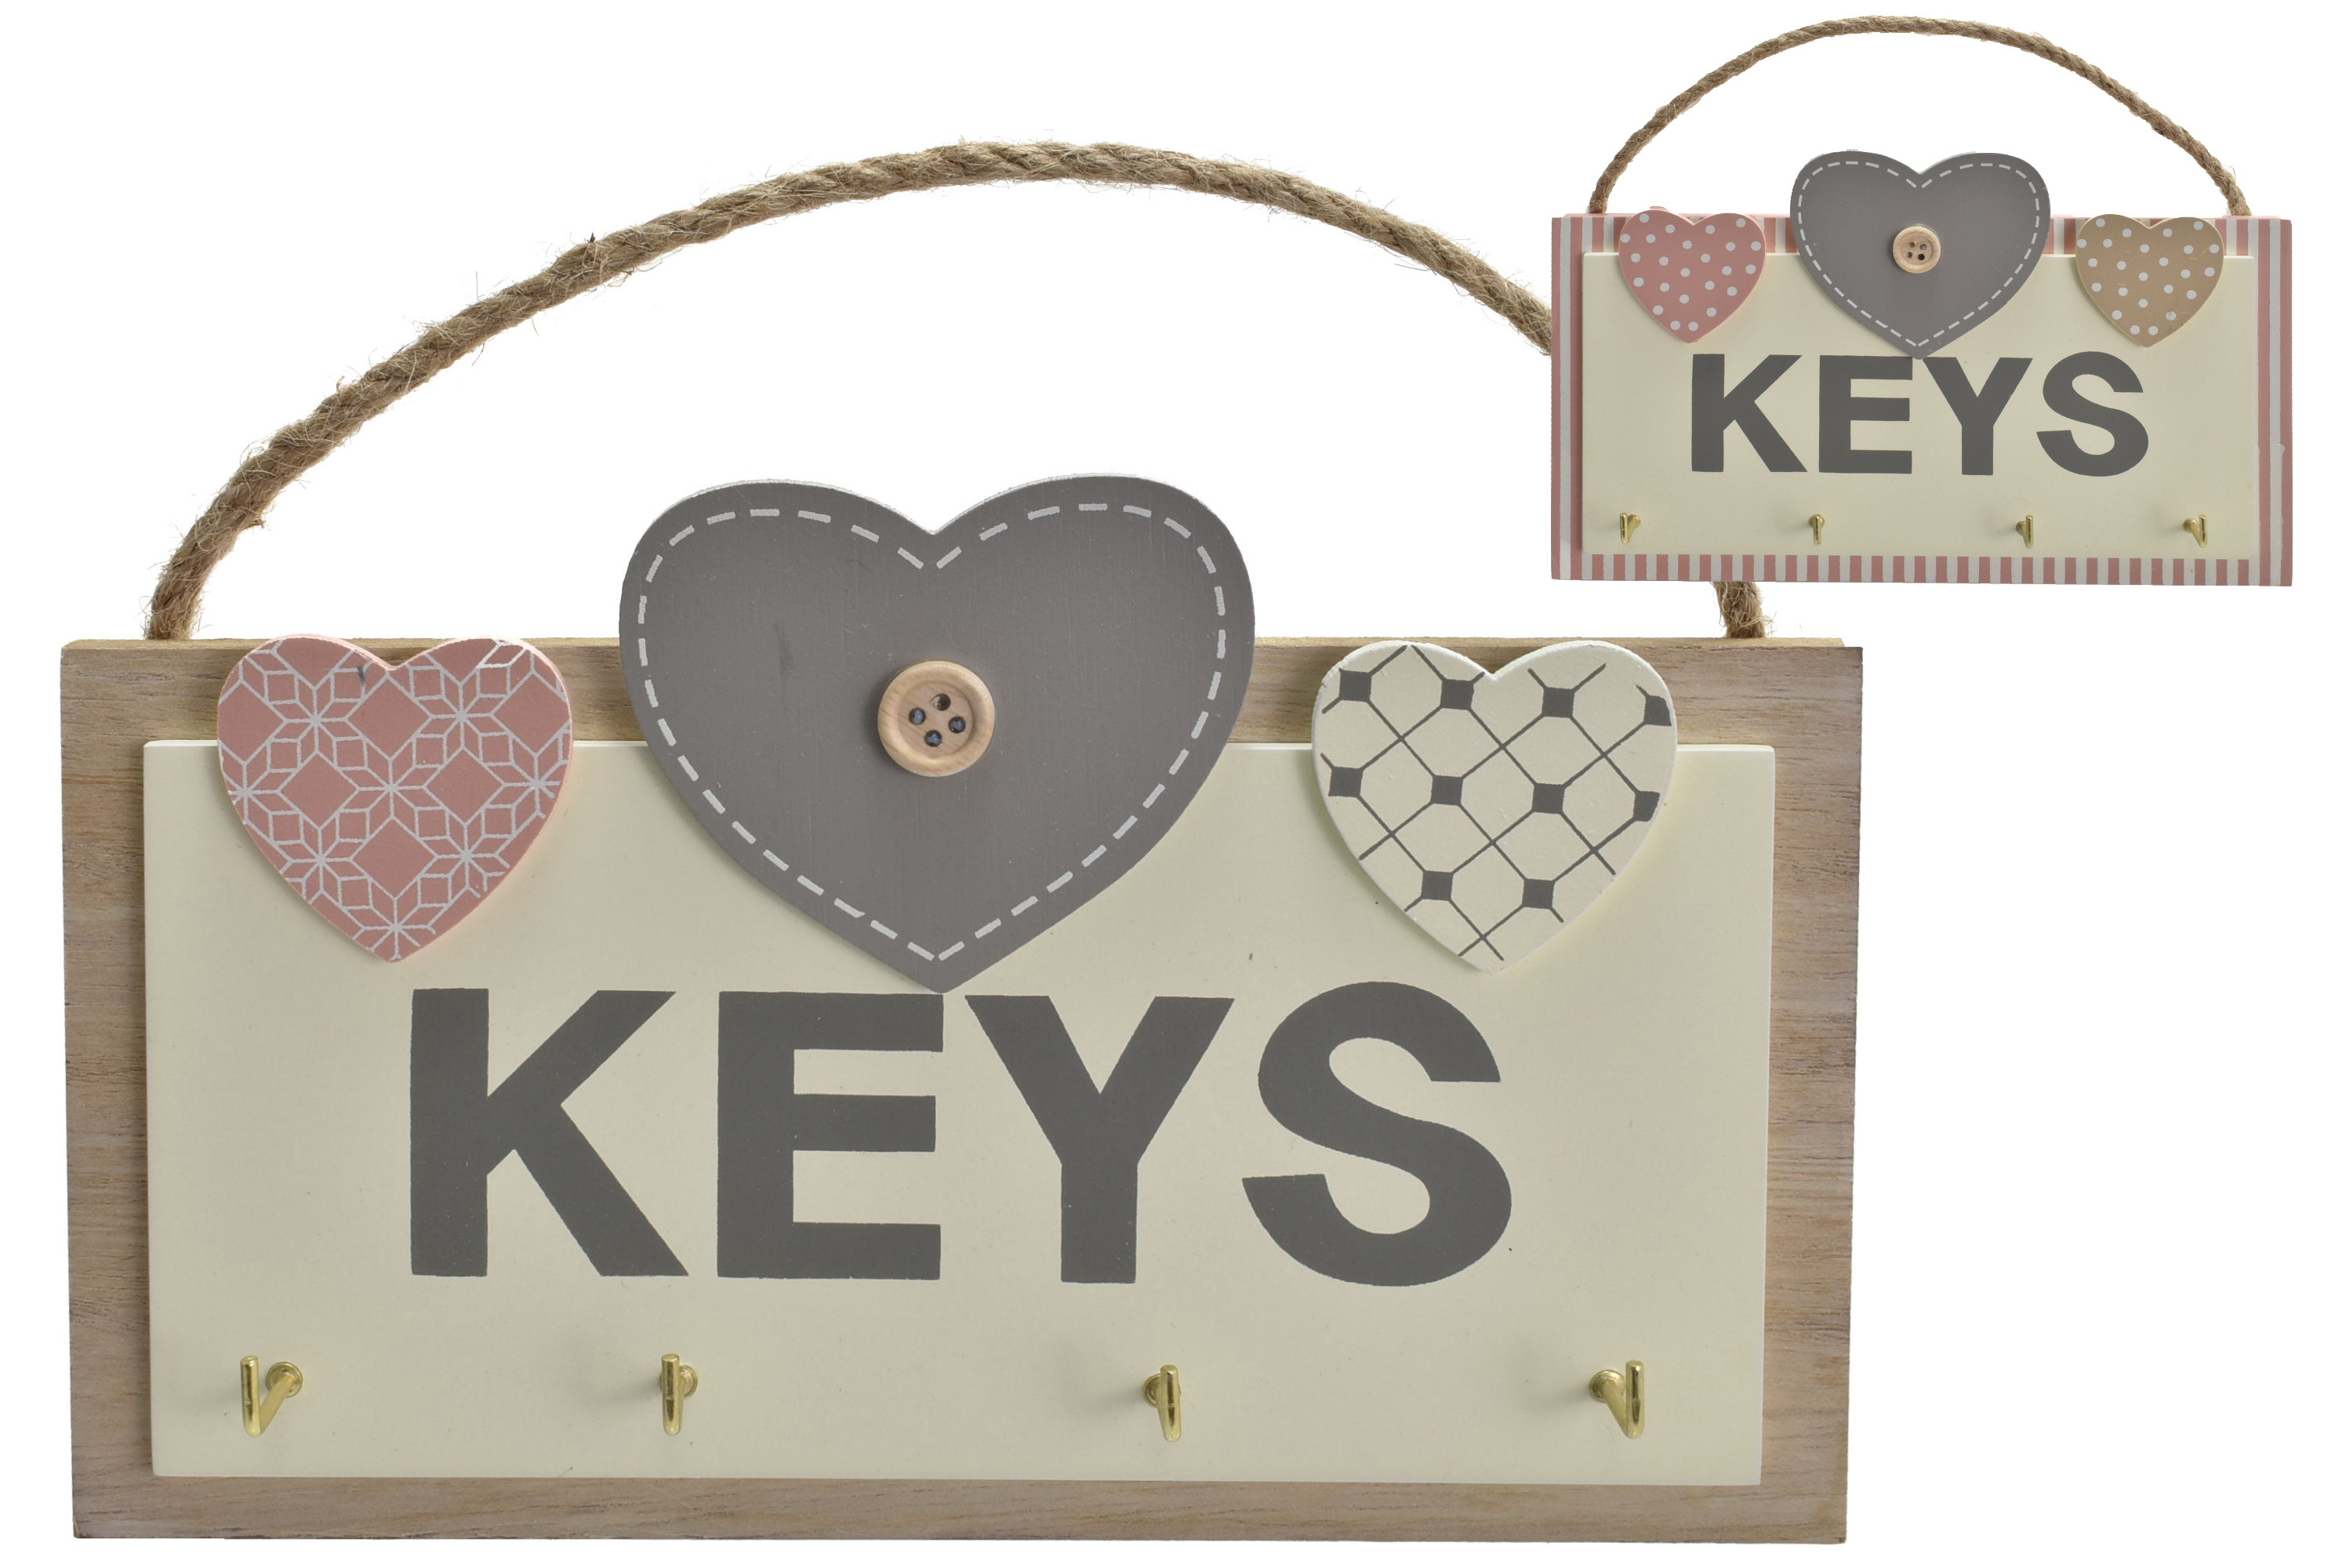 20x18cm Wooden Hearts Key Rack Pink/Grey 2 Assorted